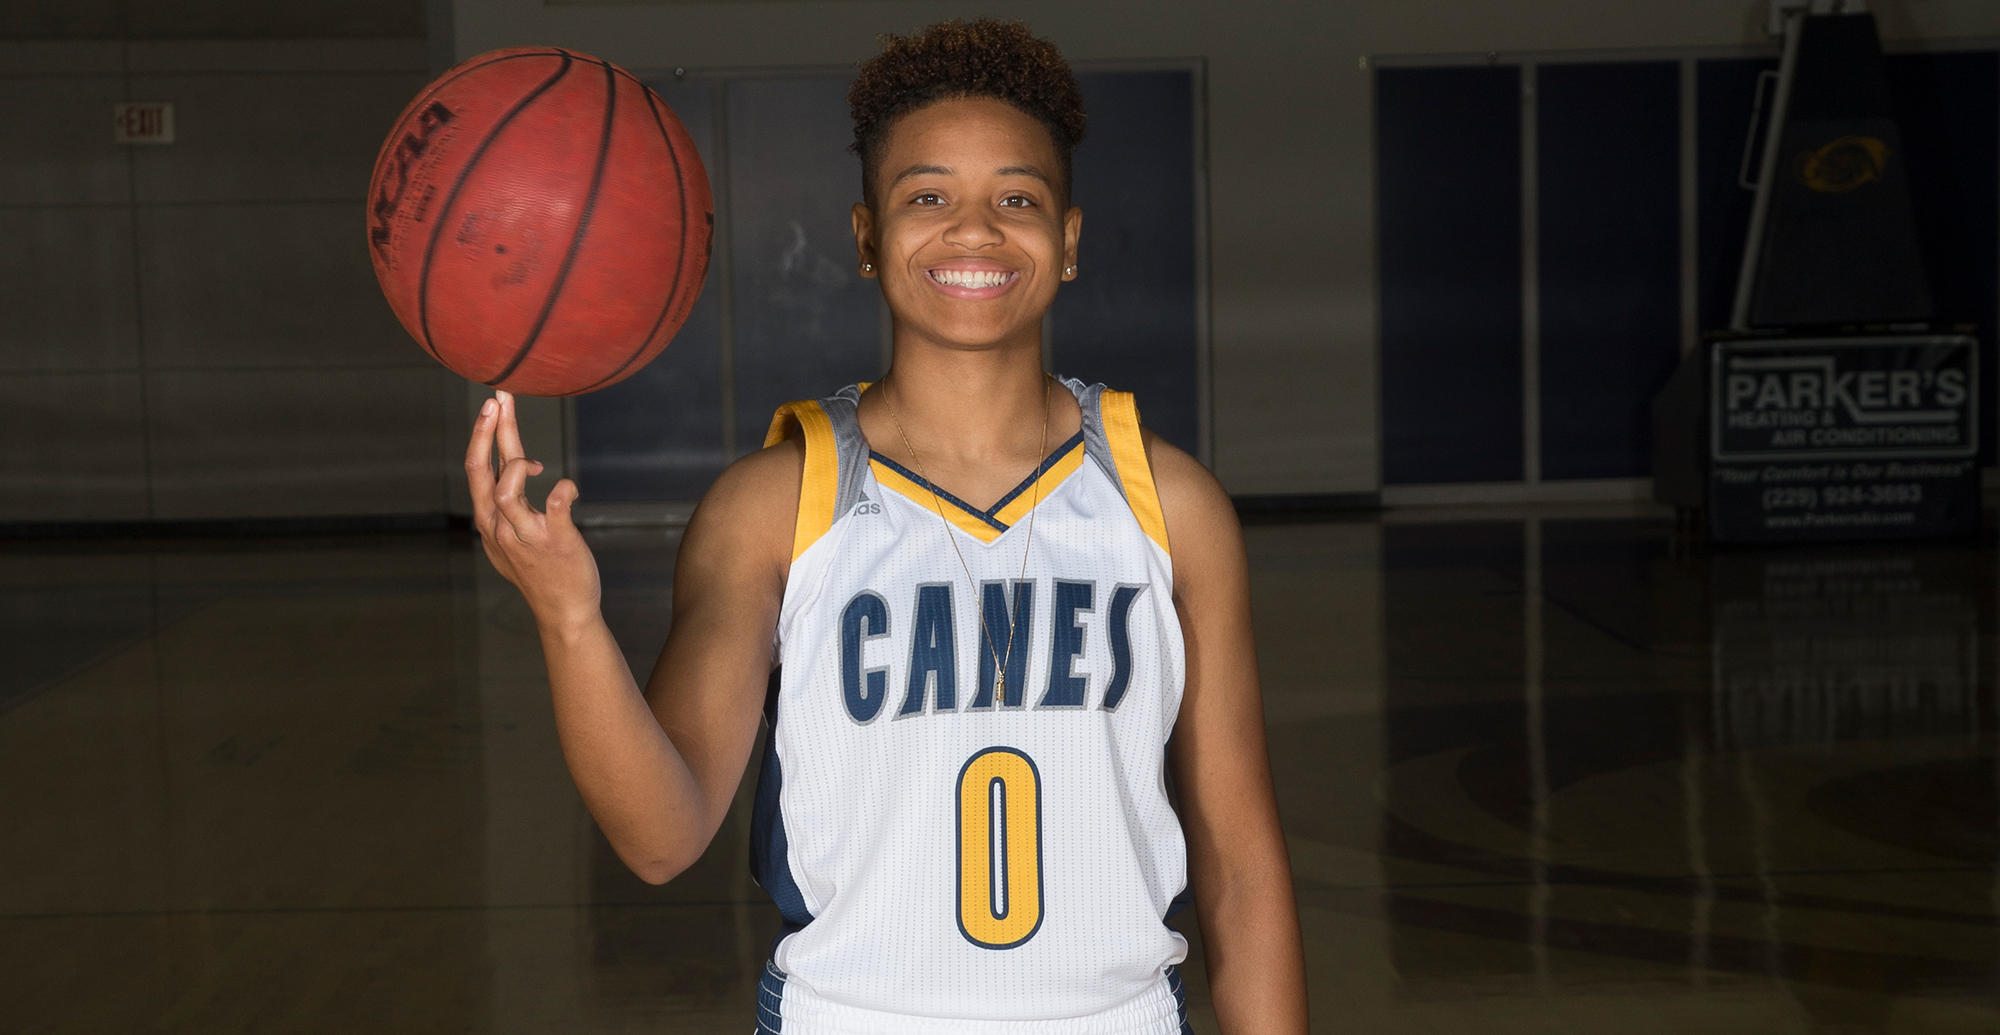 Christmas Comes Early for Lady Canes